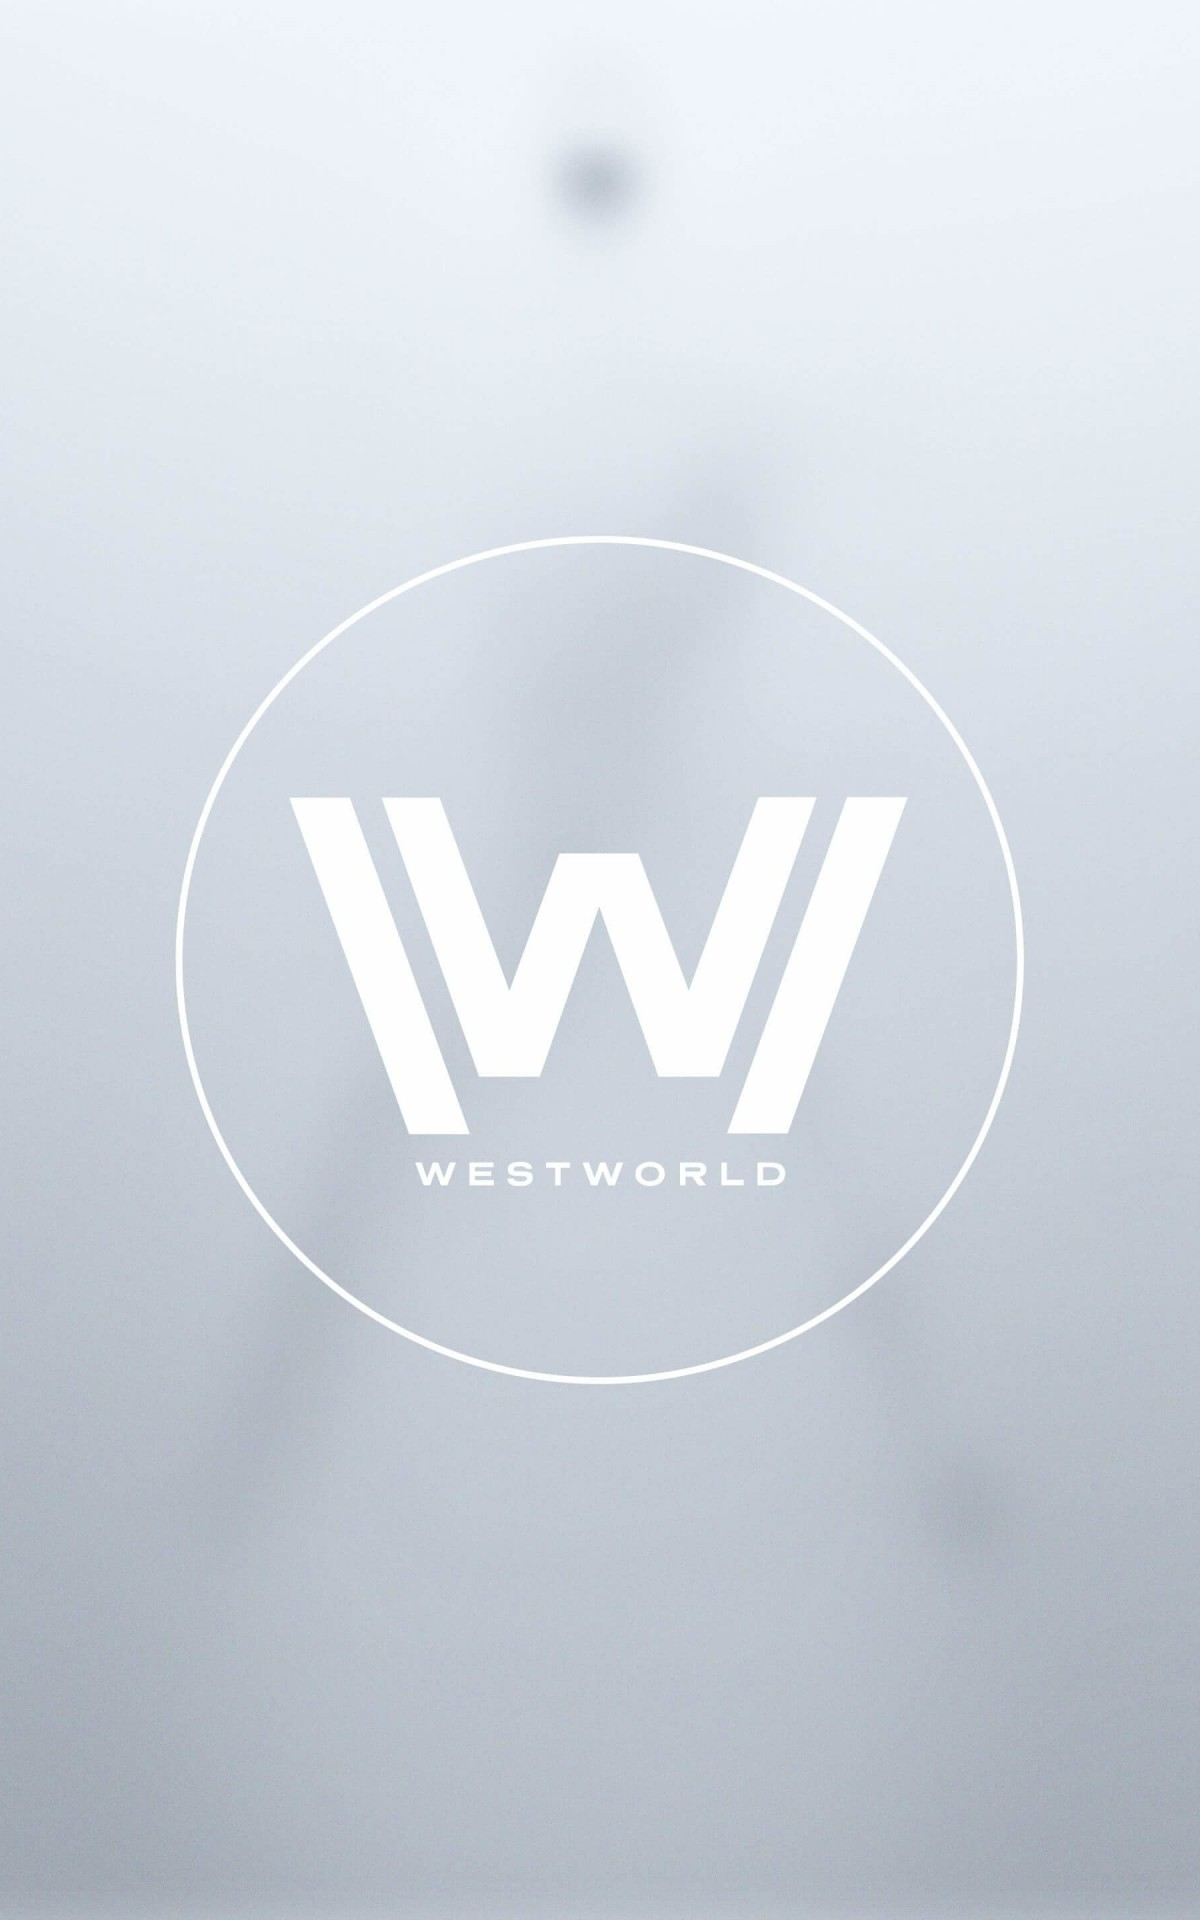 Westworld Logo Wallpaper for Amazon Kindle Fire HDX